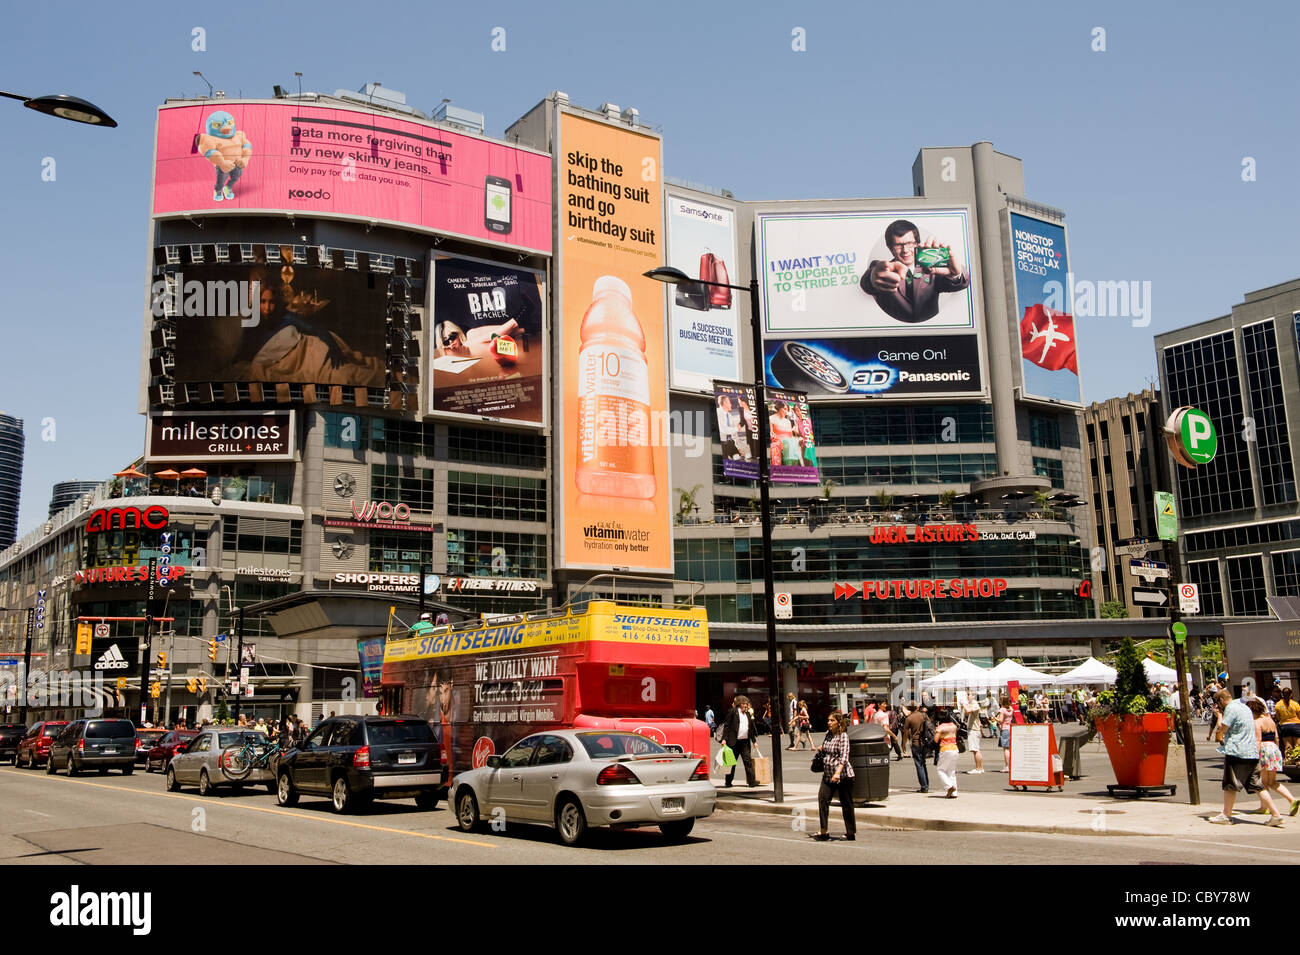 Yonge-Dundas Square in Toronto May 6, 2011. A public square modeled after Times Square attracts thousands of tourists - Stock Image